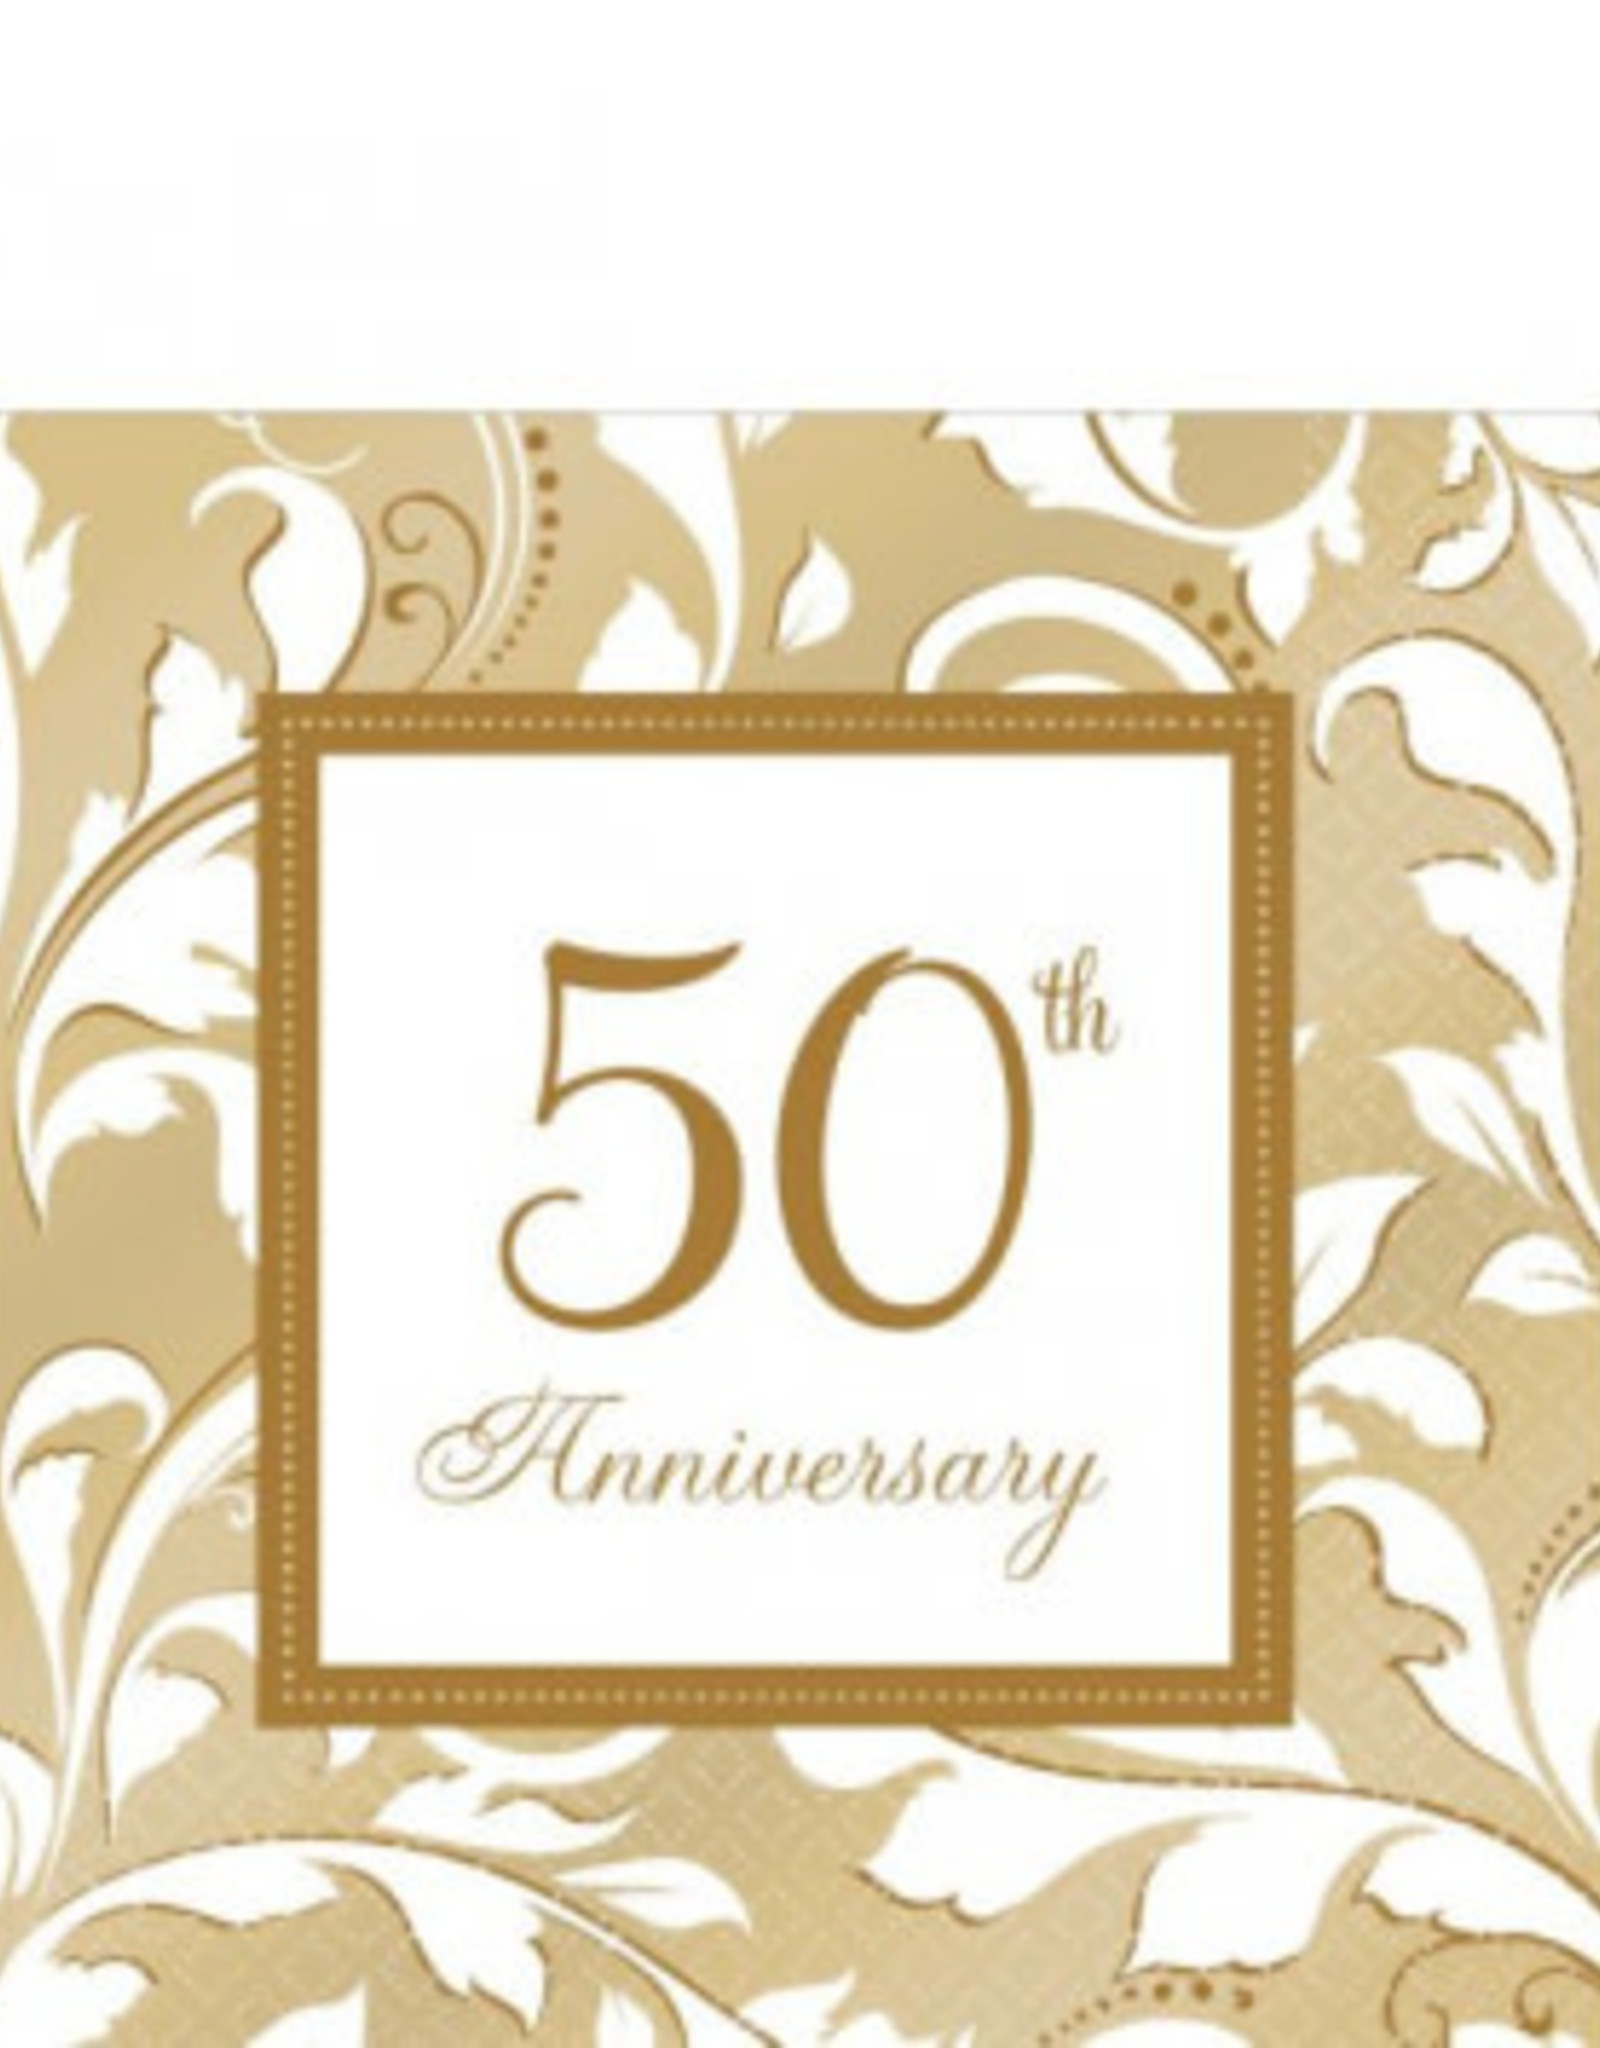 50th Anniversary Beverage Napkin 16ct